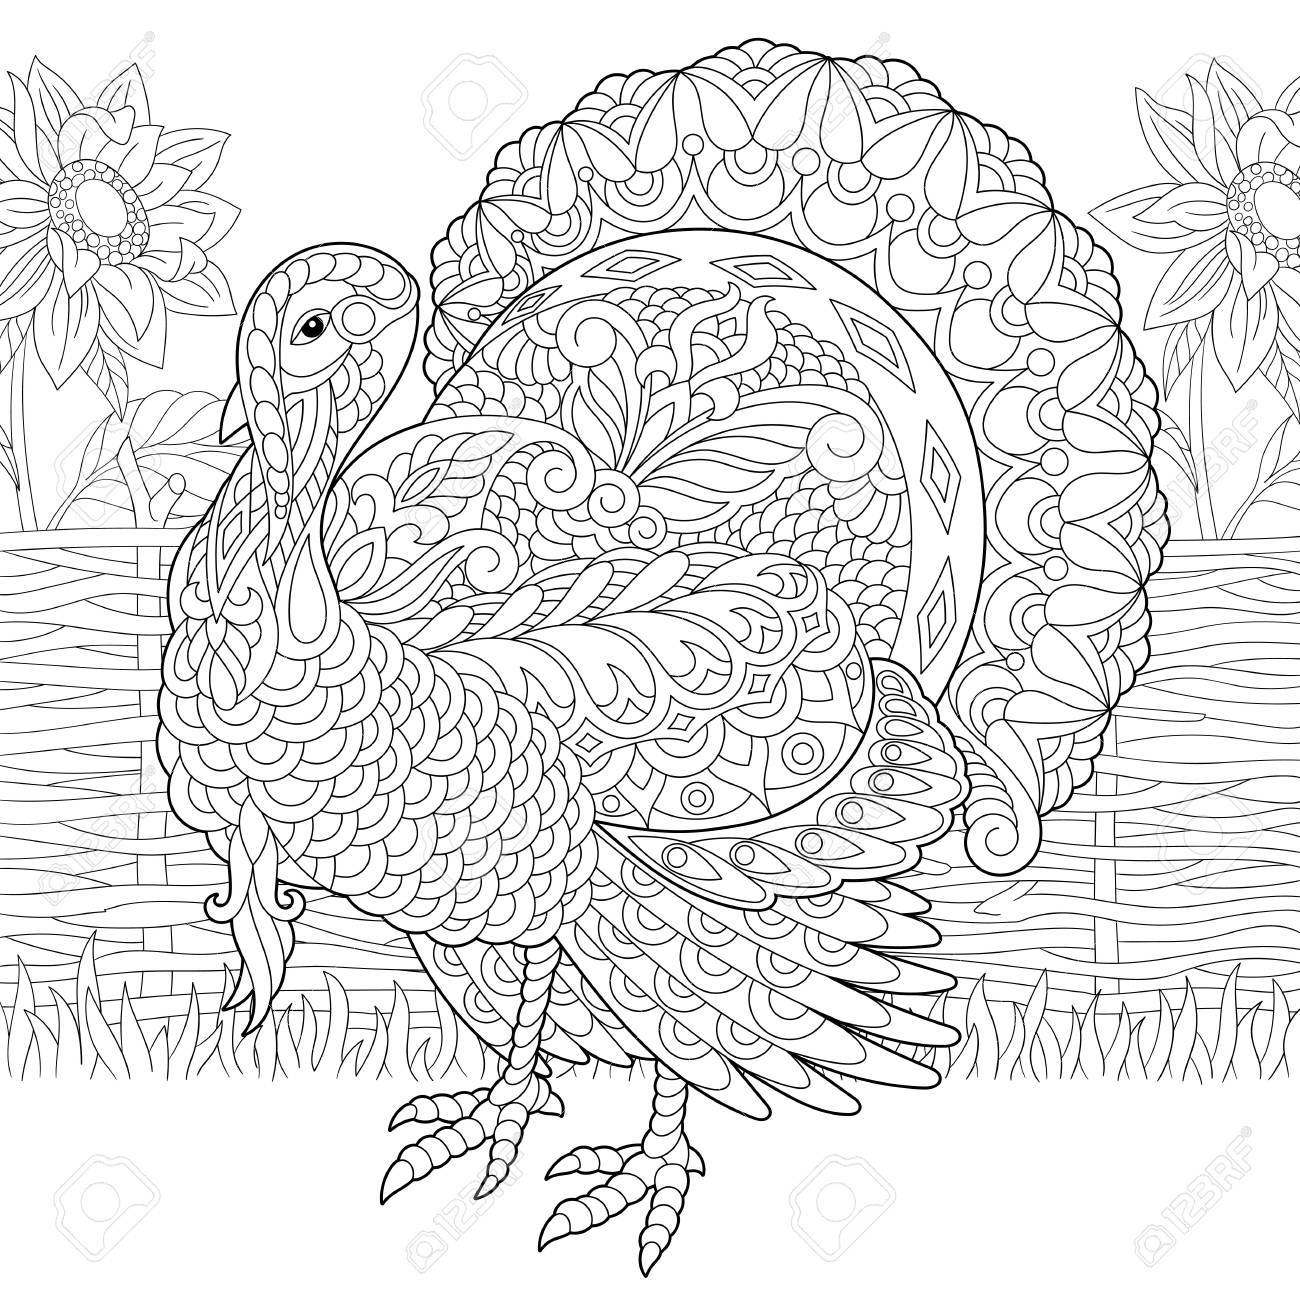 Coloring page of turkey and sunflowers on the farm yard. Freehand sketch drawing for Thanksgiving Day greeting card or adult antistress coloring book. - 89749242